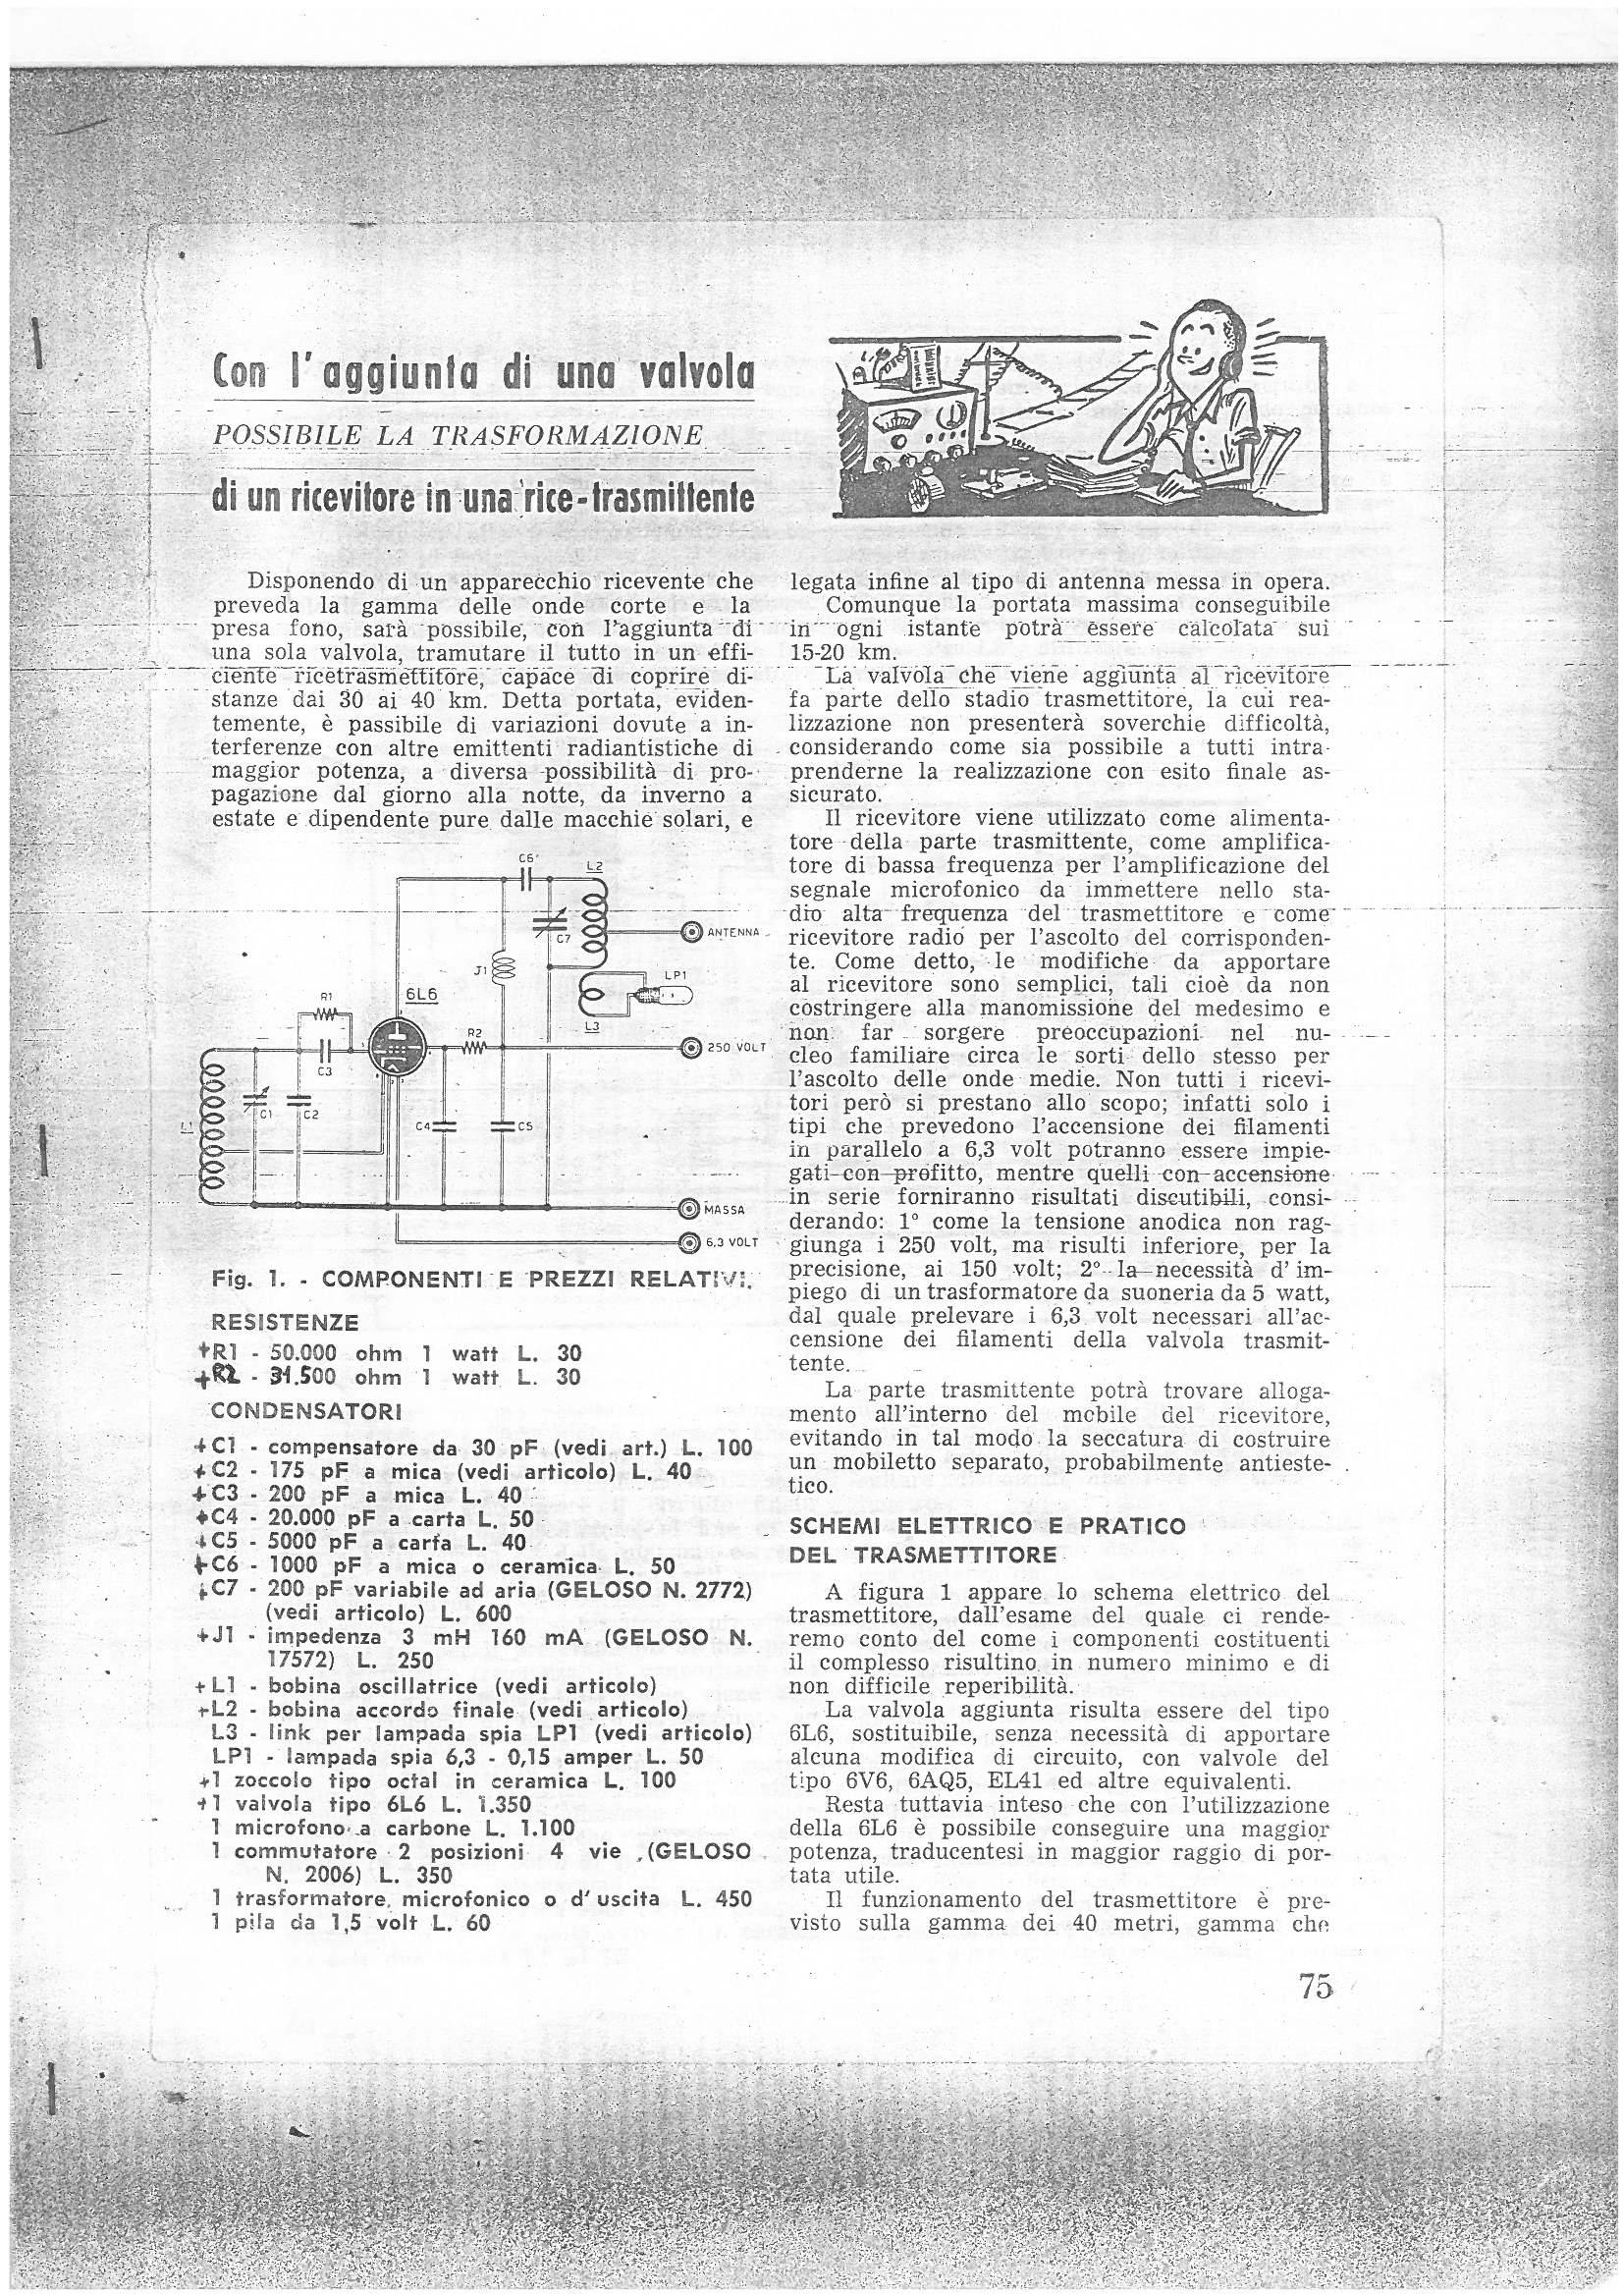 A Journey Into Building Radio Transmitters With Vacuum Tubes Fm Transmitter Circuits And Schematics Low Power Hobby The Plate Circuit Of This Rig Requires Rf Choke See Approximate